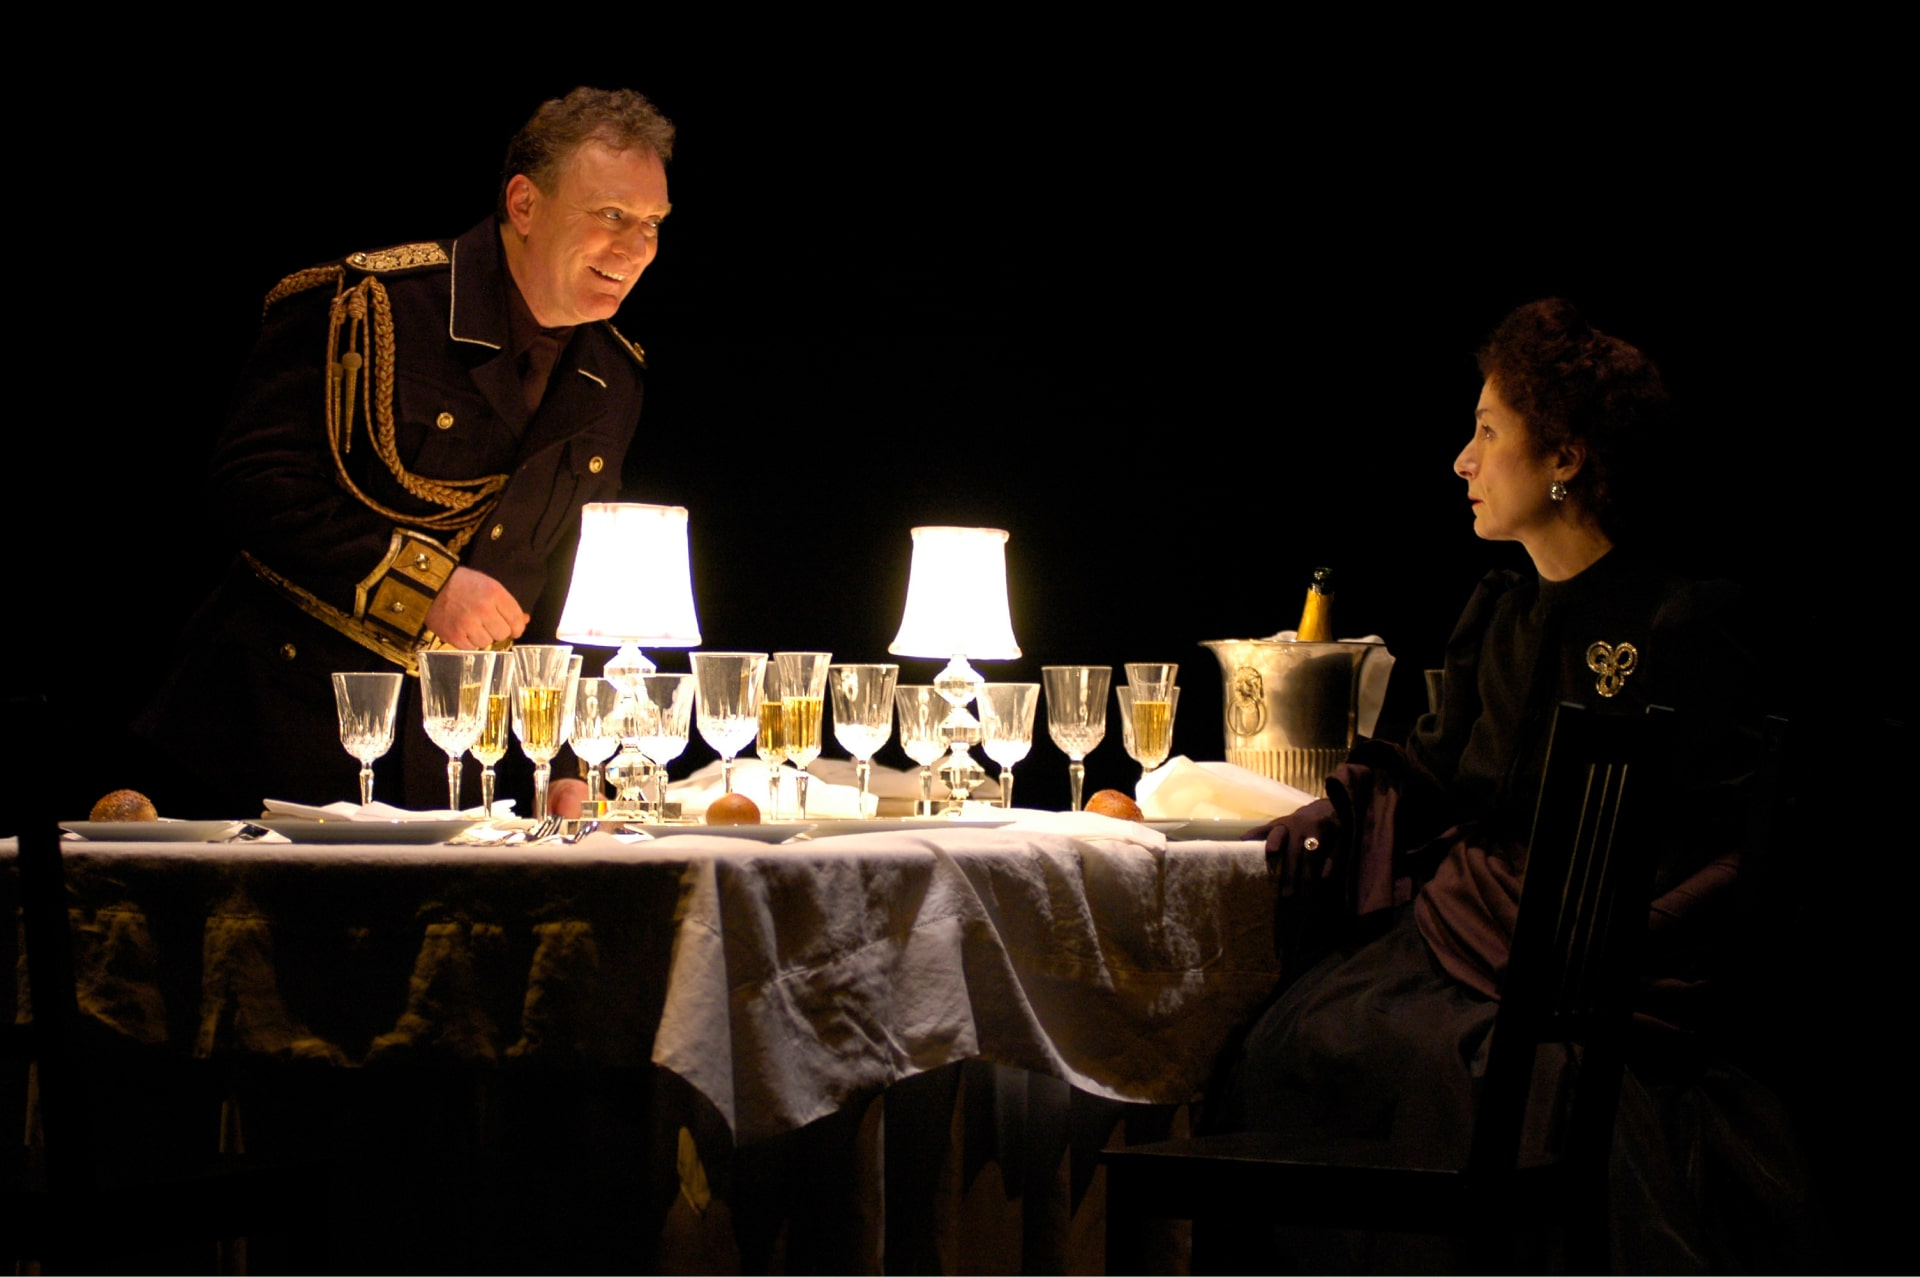 Liveried man leans on table across from seated woman, many crystal goblets between them lit by two small table lamps.